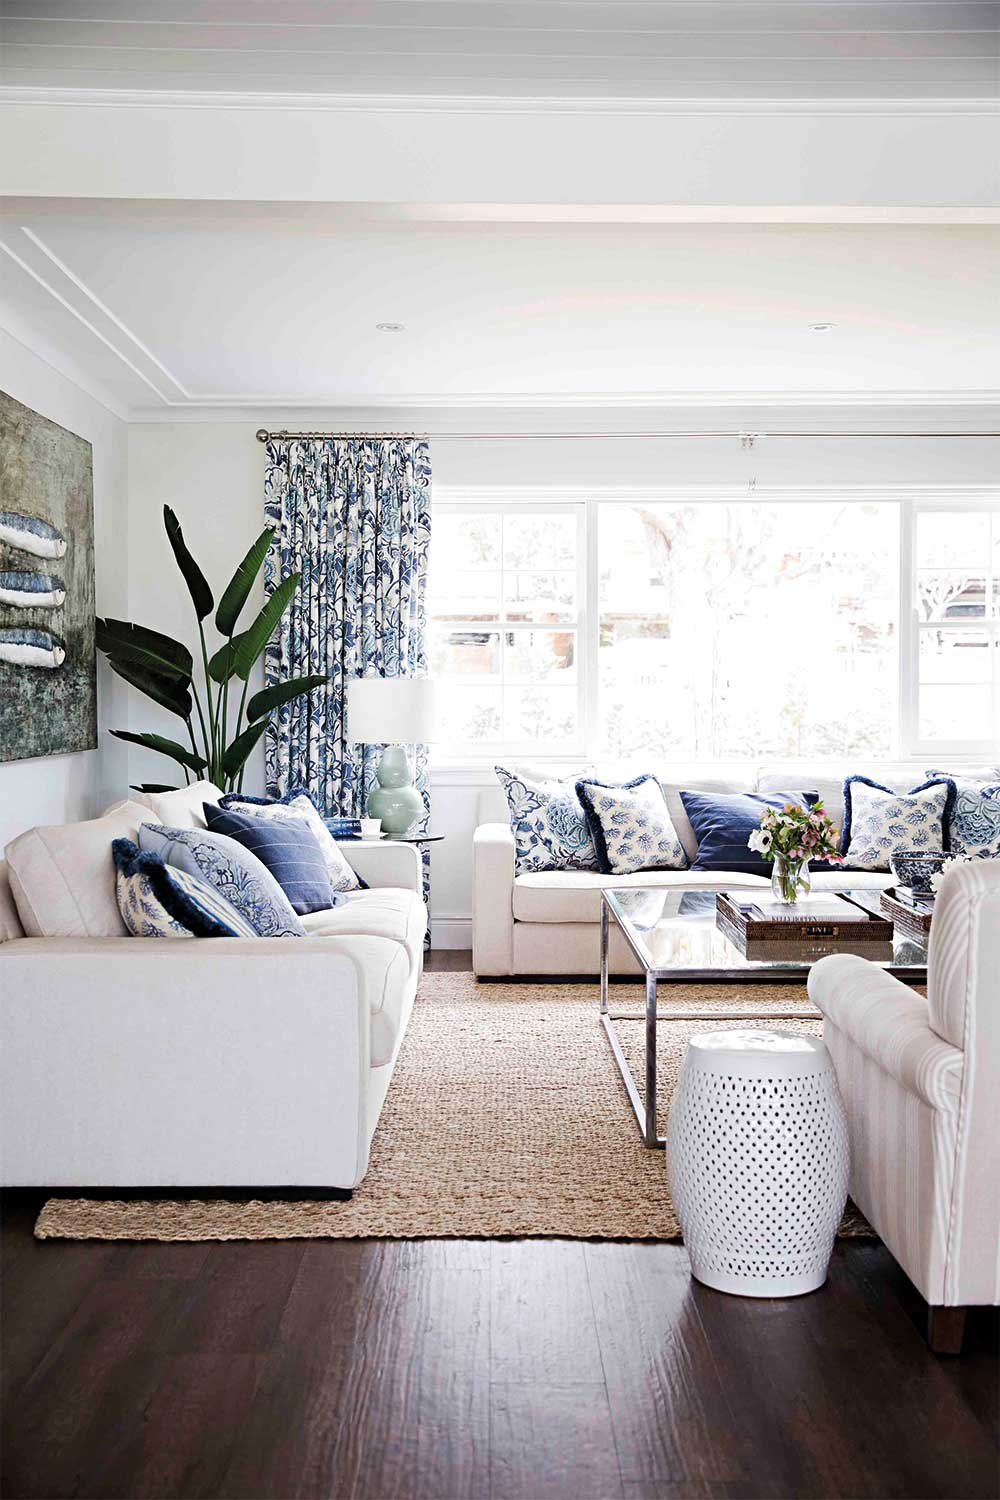 10 Easy Ways To Decorate Your Home With Hamptons Style Decor Home Beautiful Magazine Australia